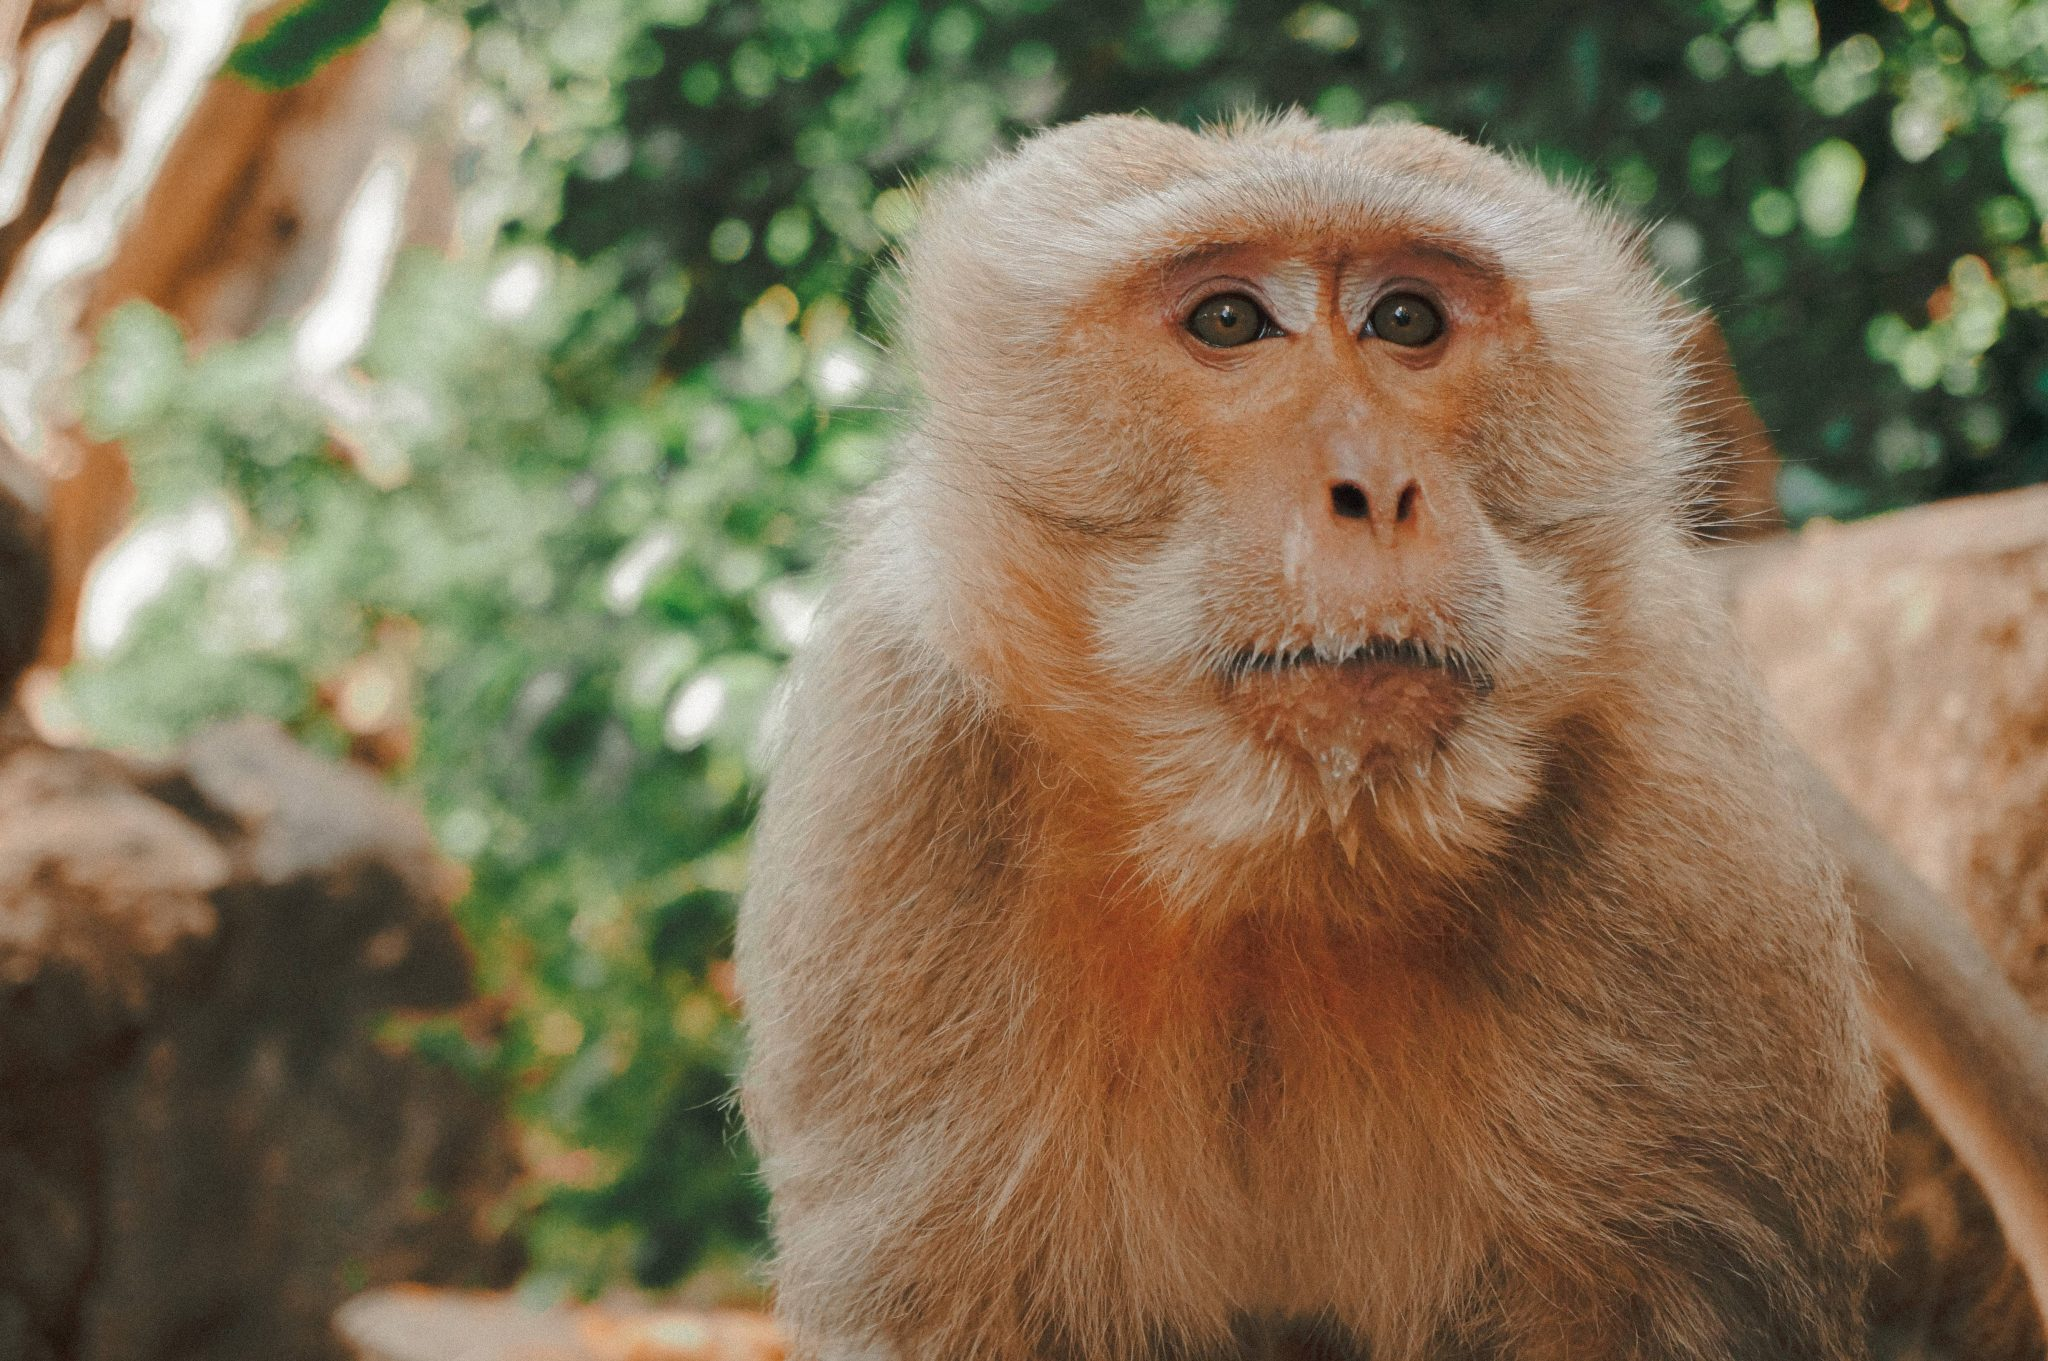 You can't teach an old monkey to pull faces! : Why be a web designer?